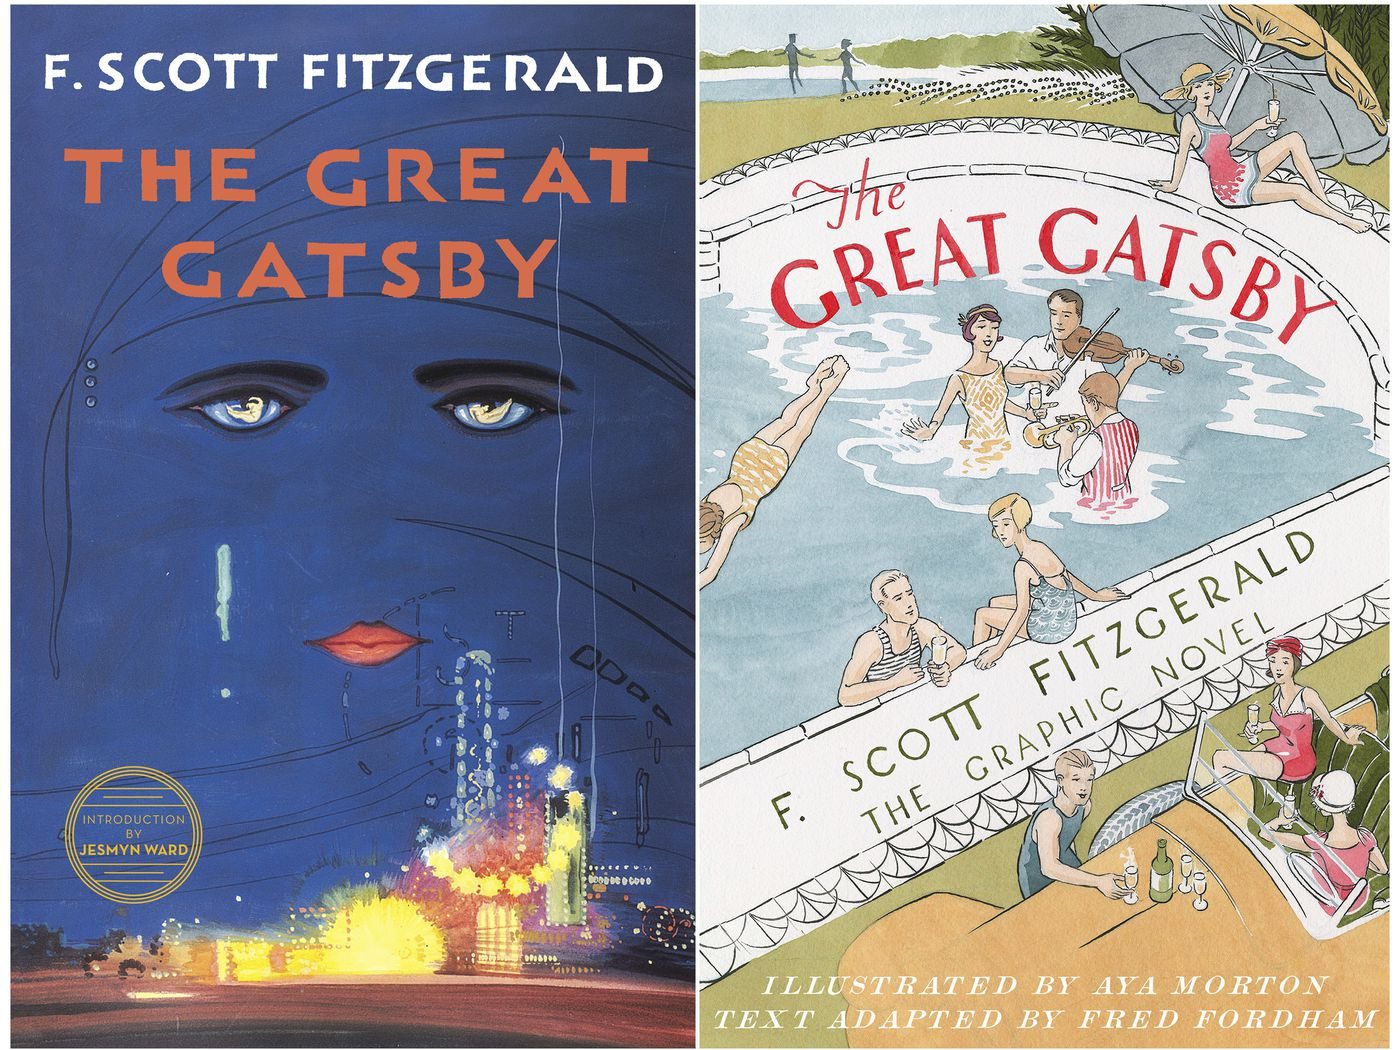 The Great Gatsby Will Enter Public Domain As Copyright Ends In 2021 Chicago Sun Times